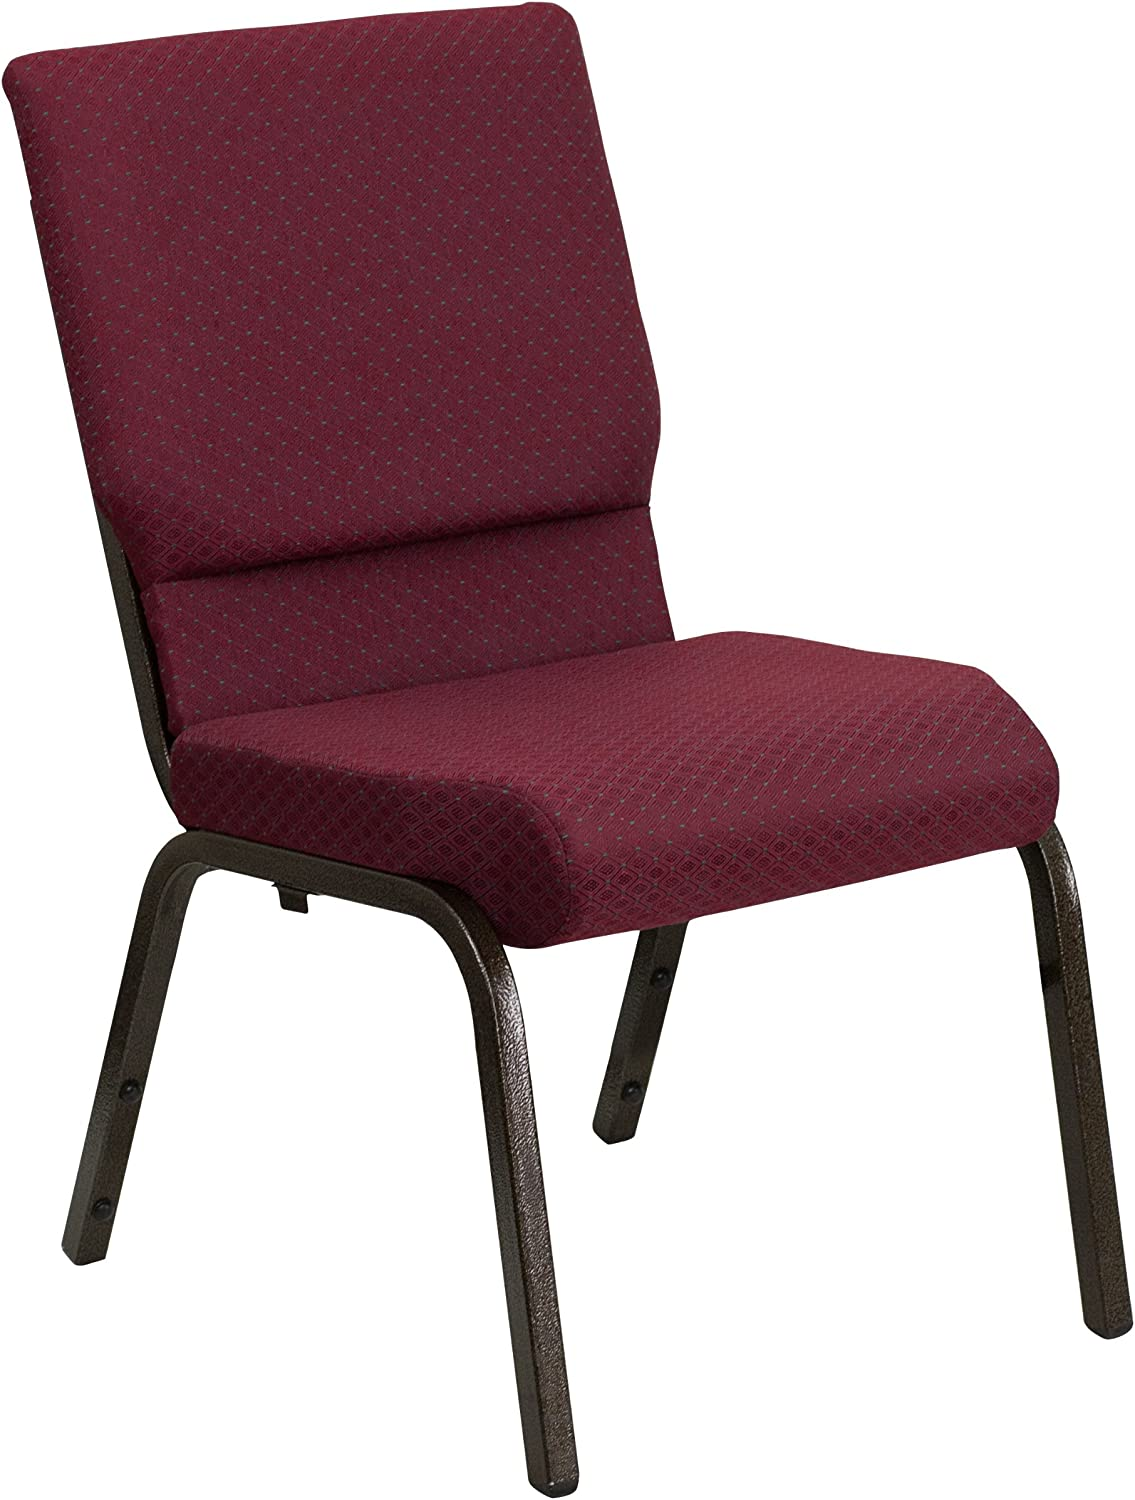 Flash Furniture HERCULES Series 18.5''W Stacking Church Chair in Burgundy Patterned Fabric - Gold Vein Frame